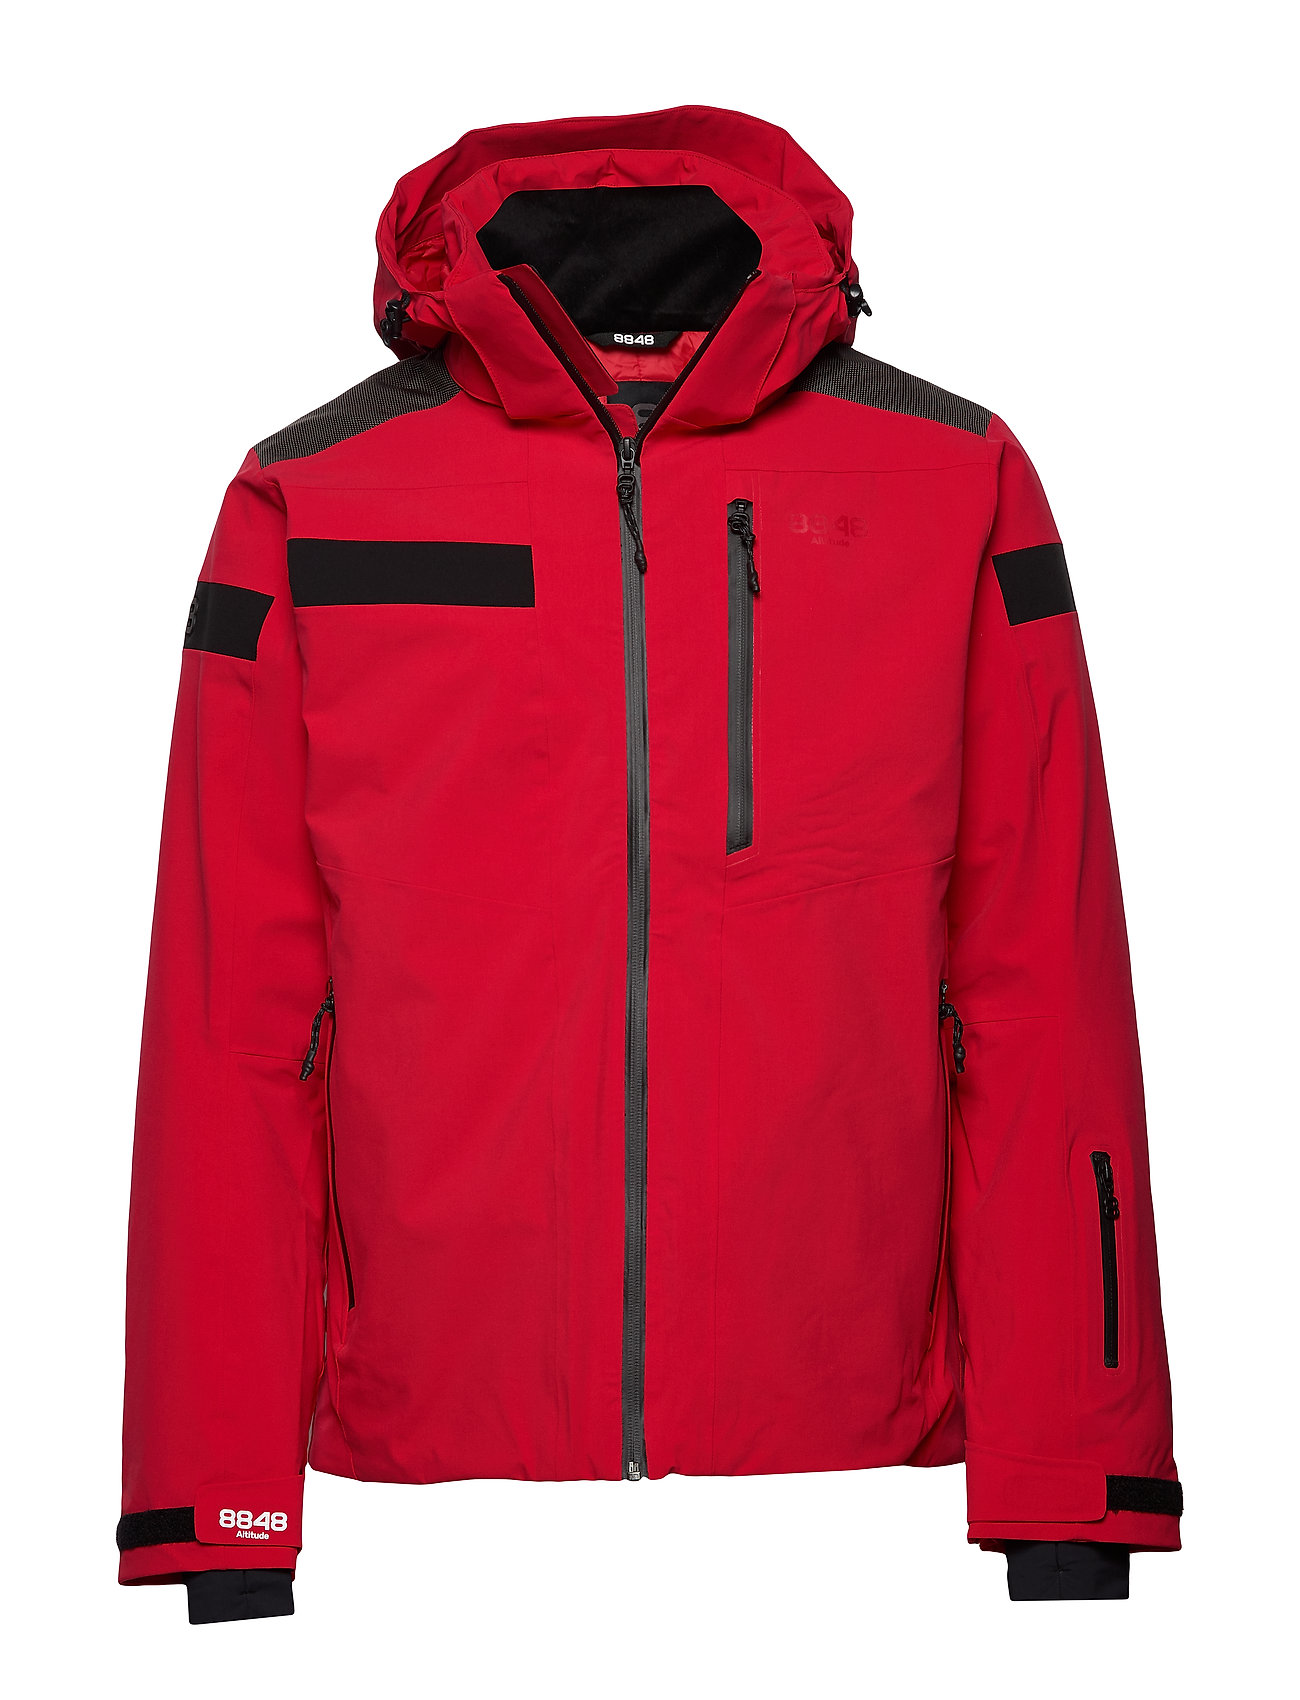 8848 Altitude Aston Jacket - RED